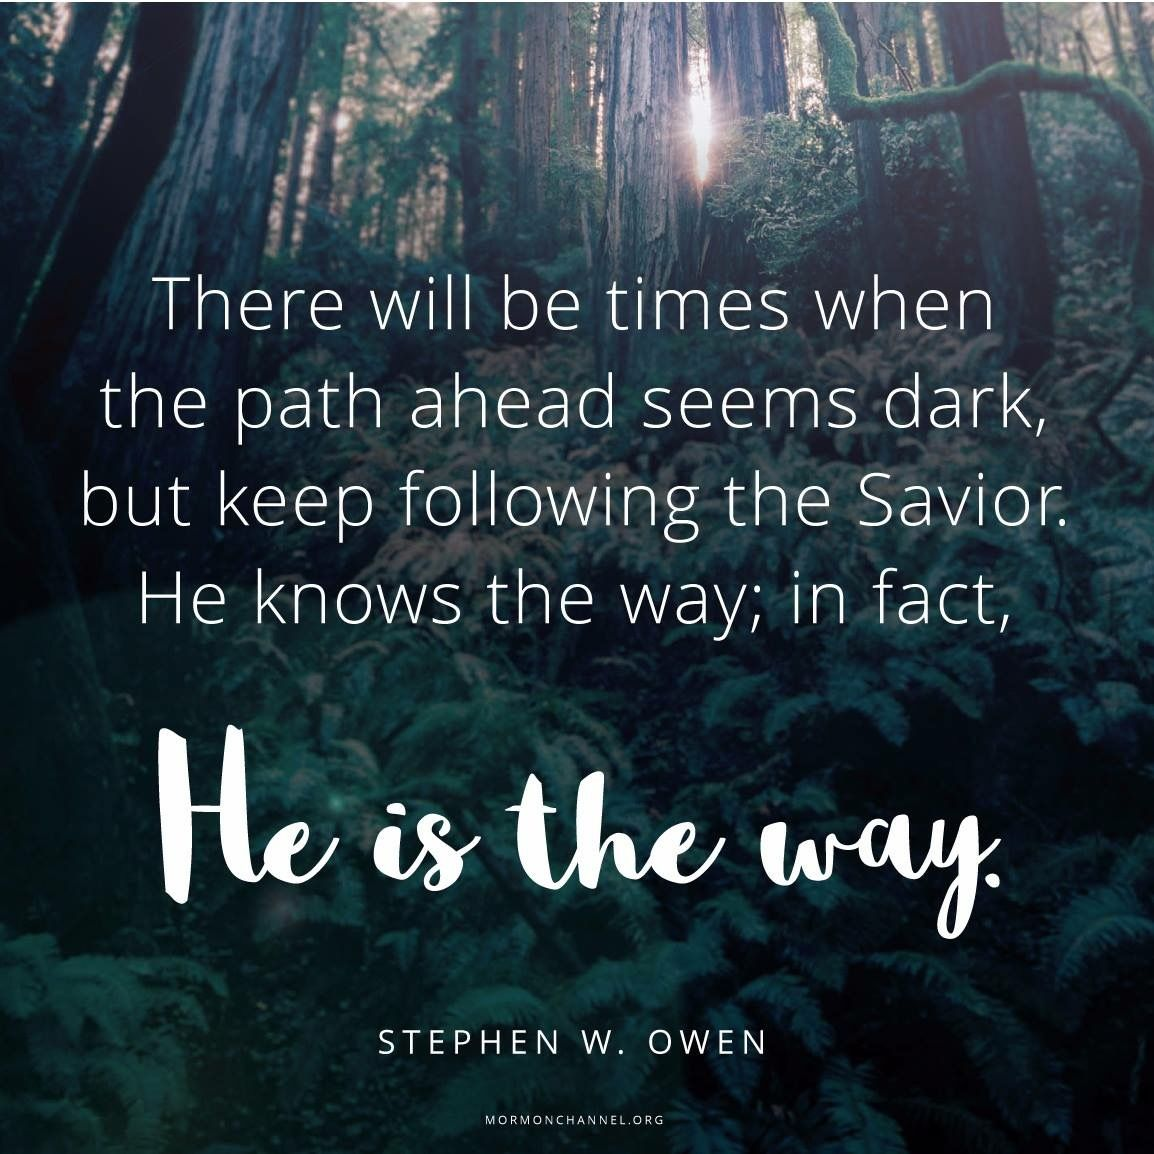 Stephen W Owen Church Quotes Spiritual Quotes Saint Quotes